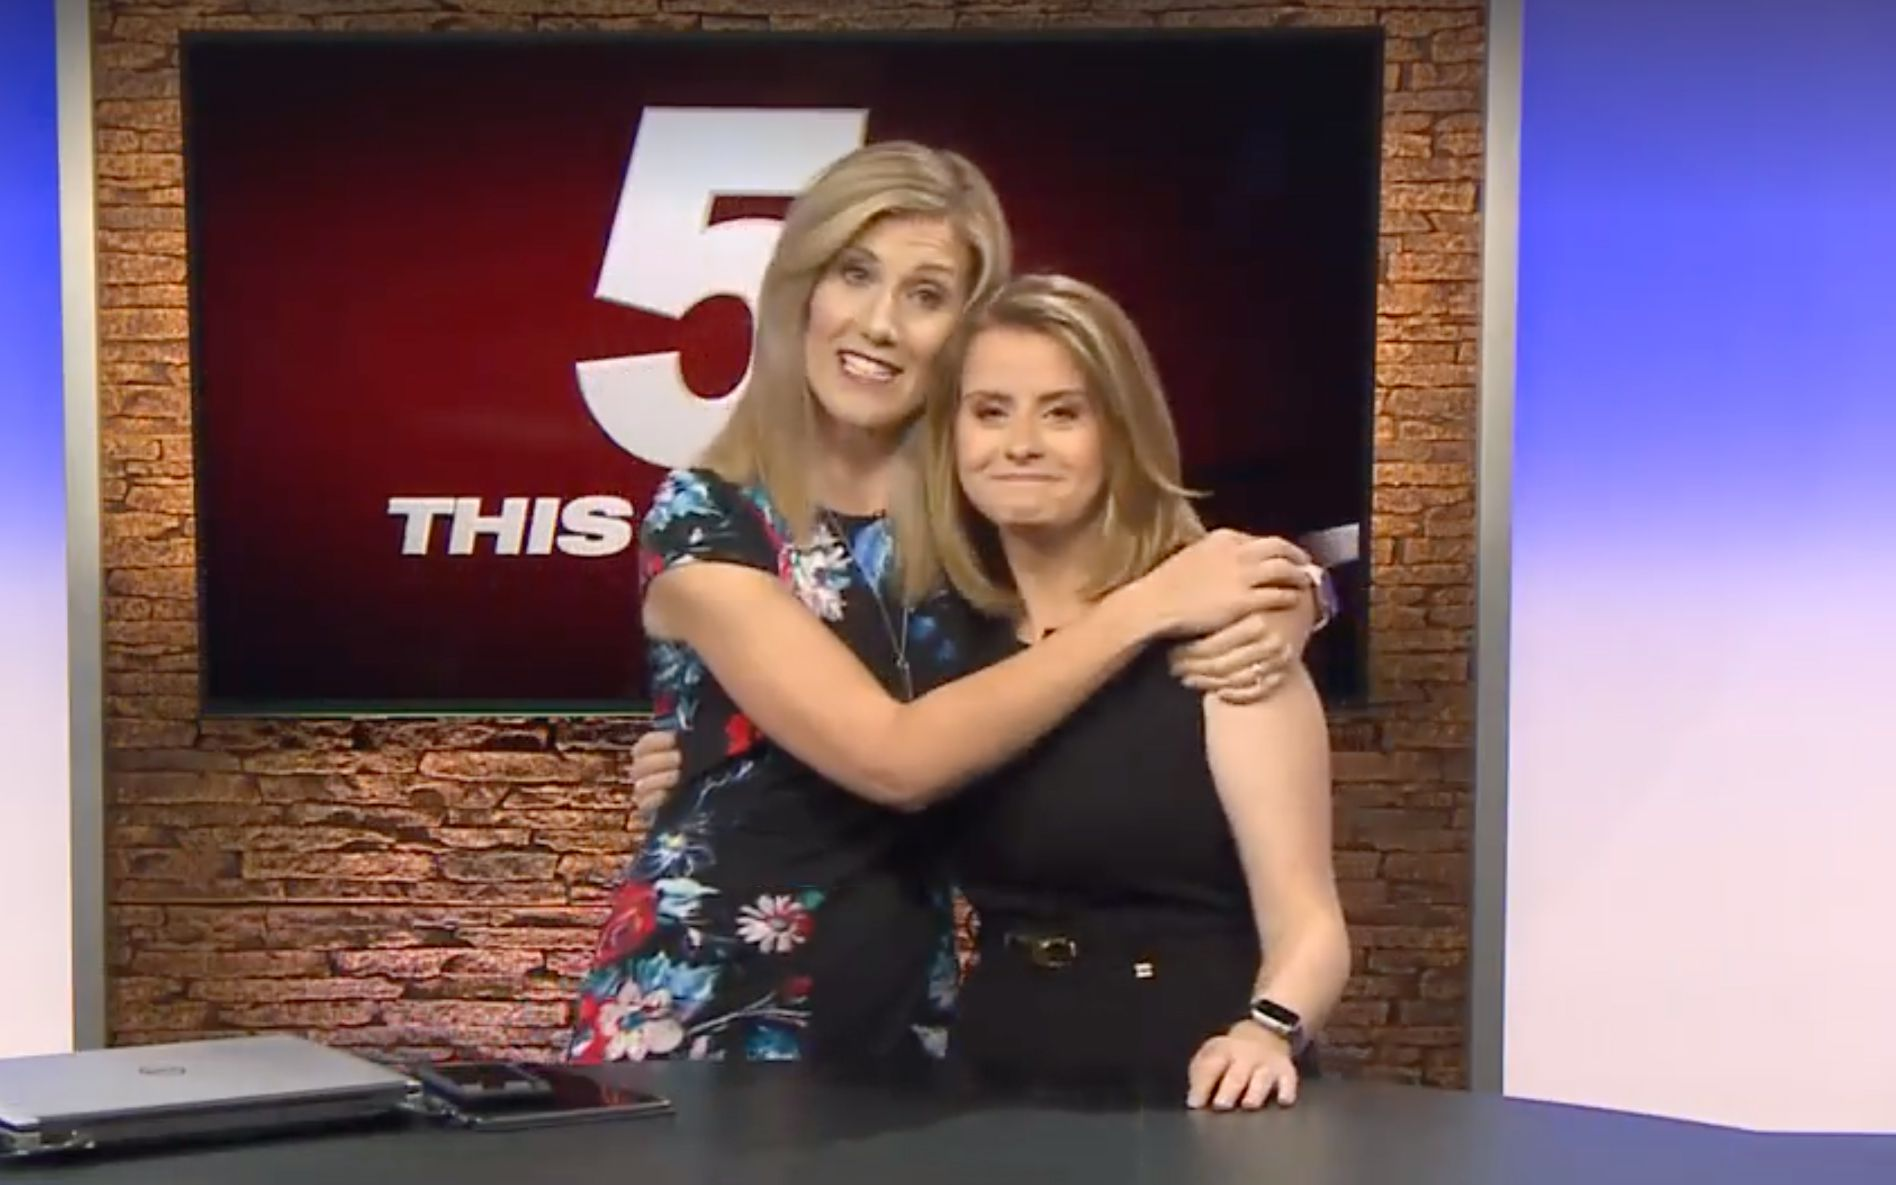 Allison Bybee Molly Matott Bid Farewell On Cny Central After 4 Years Syracuse Com